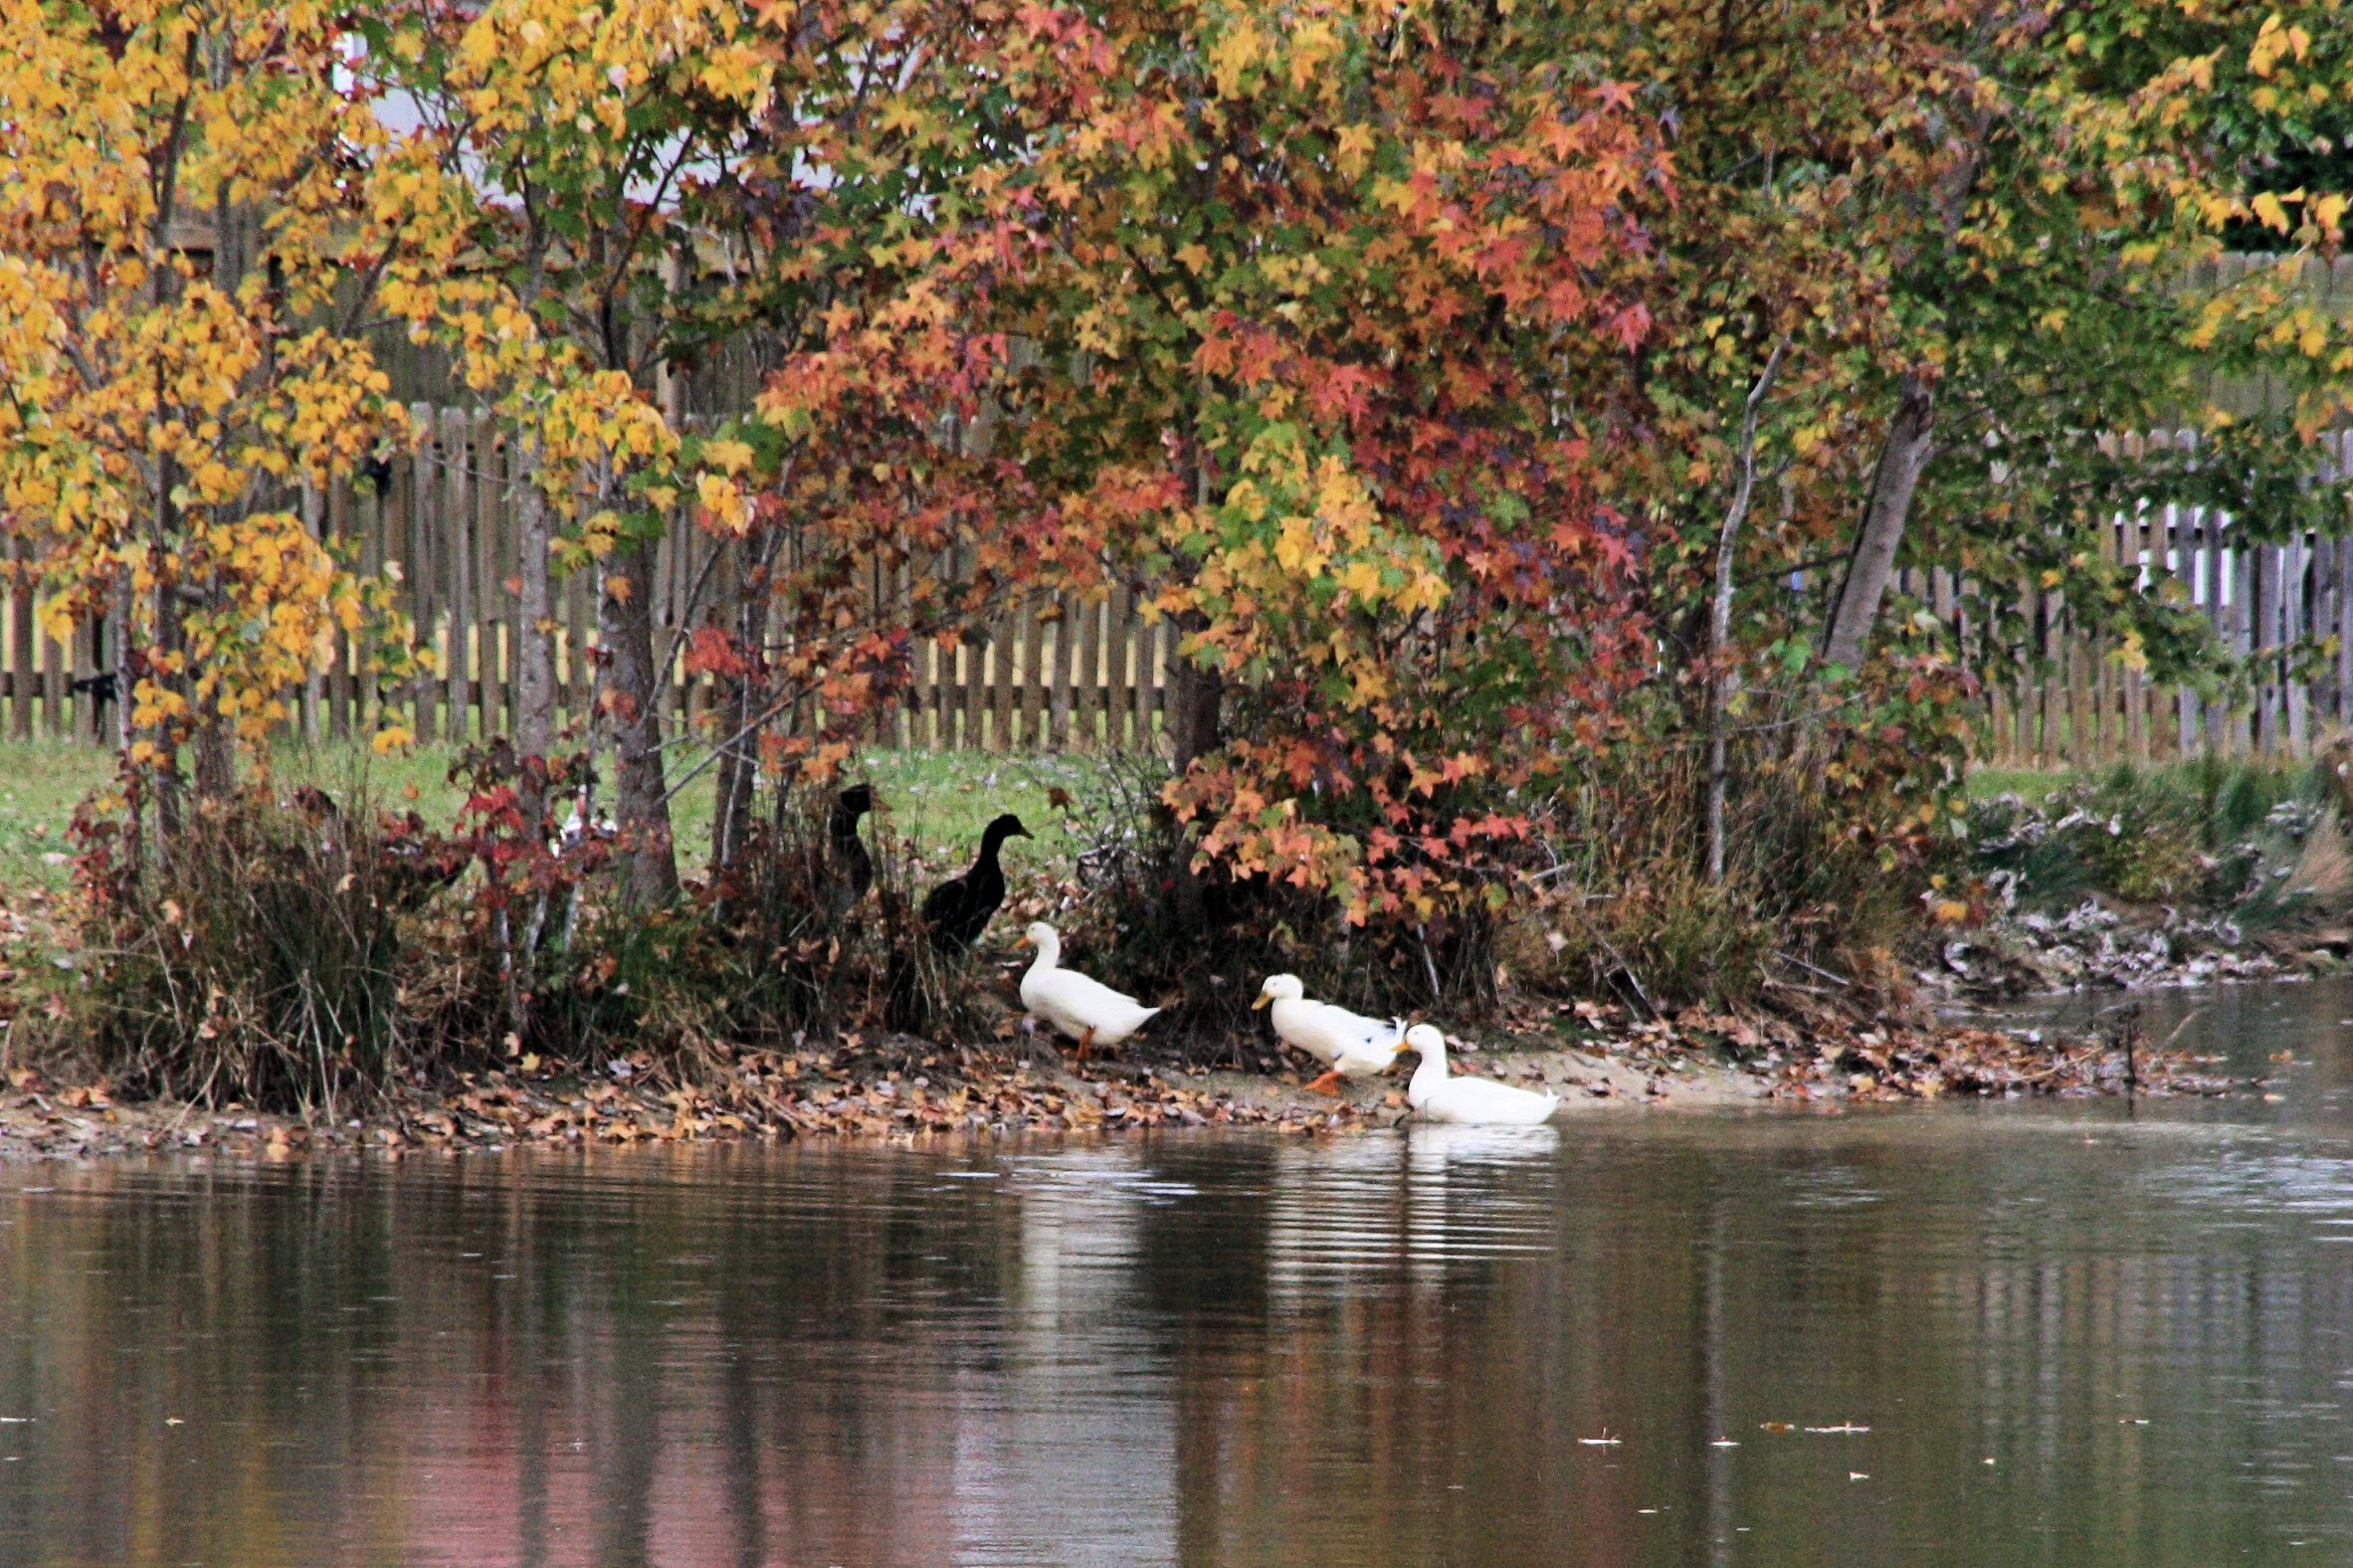 Photo of Pond with Ducks and Red and Yellow Maple Trees by TorchFire Studio